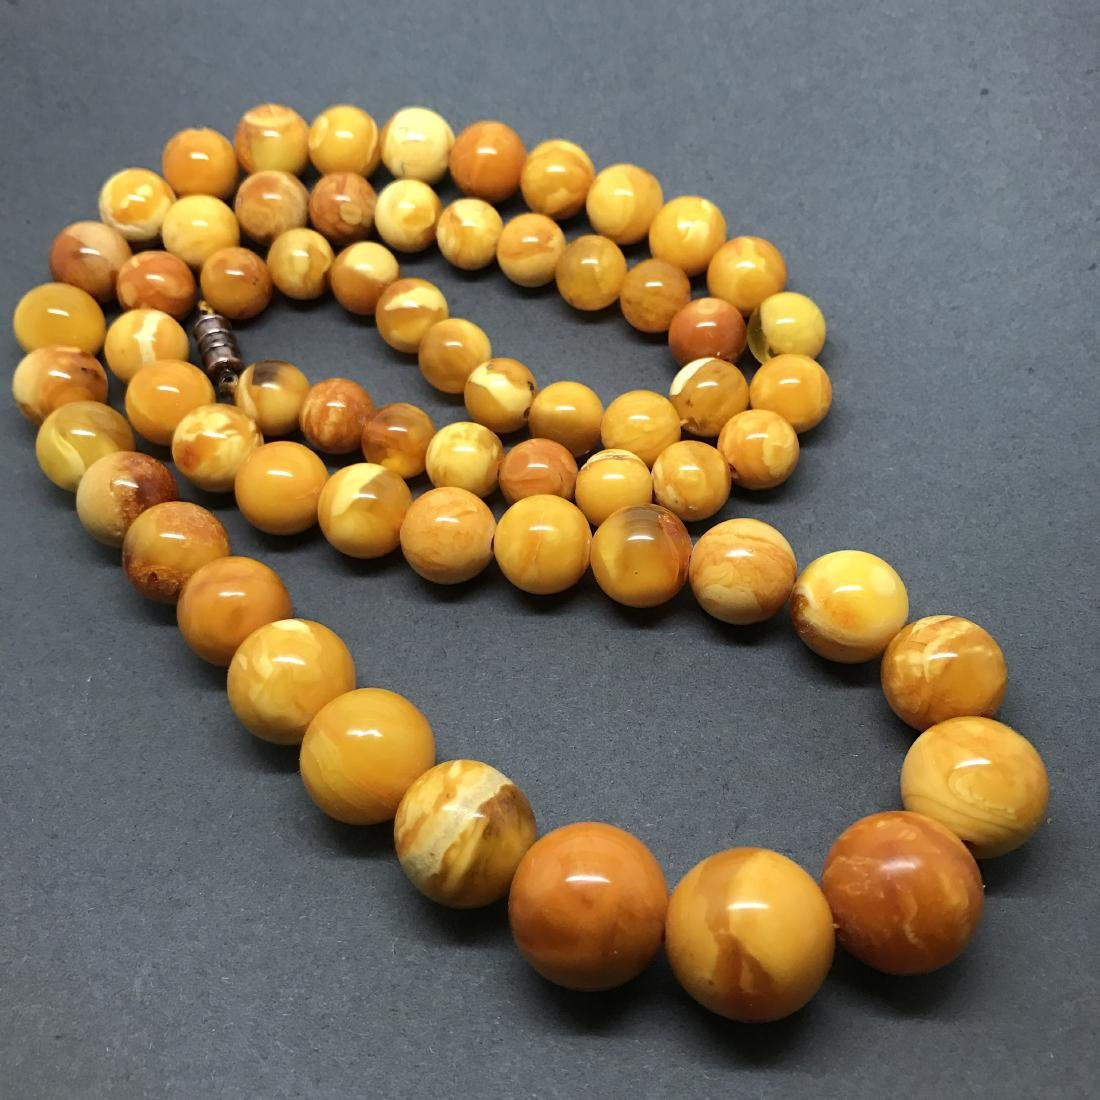 Antique Baltic Amber Necklace Egg Yolk&Yellow-White